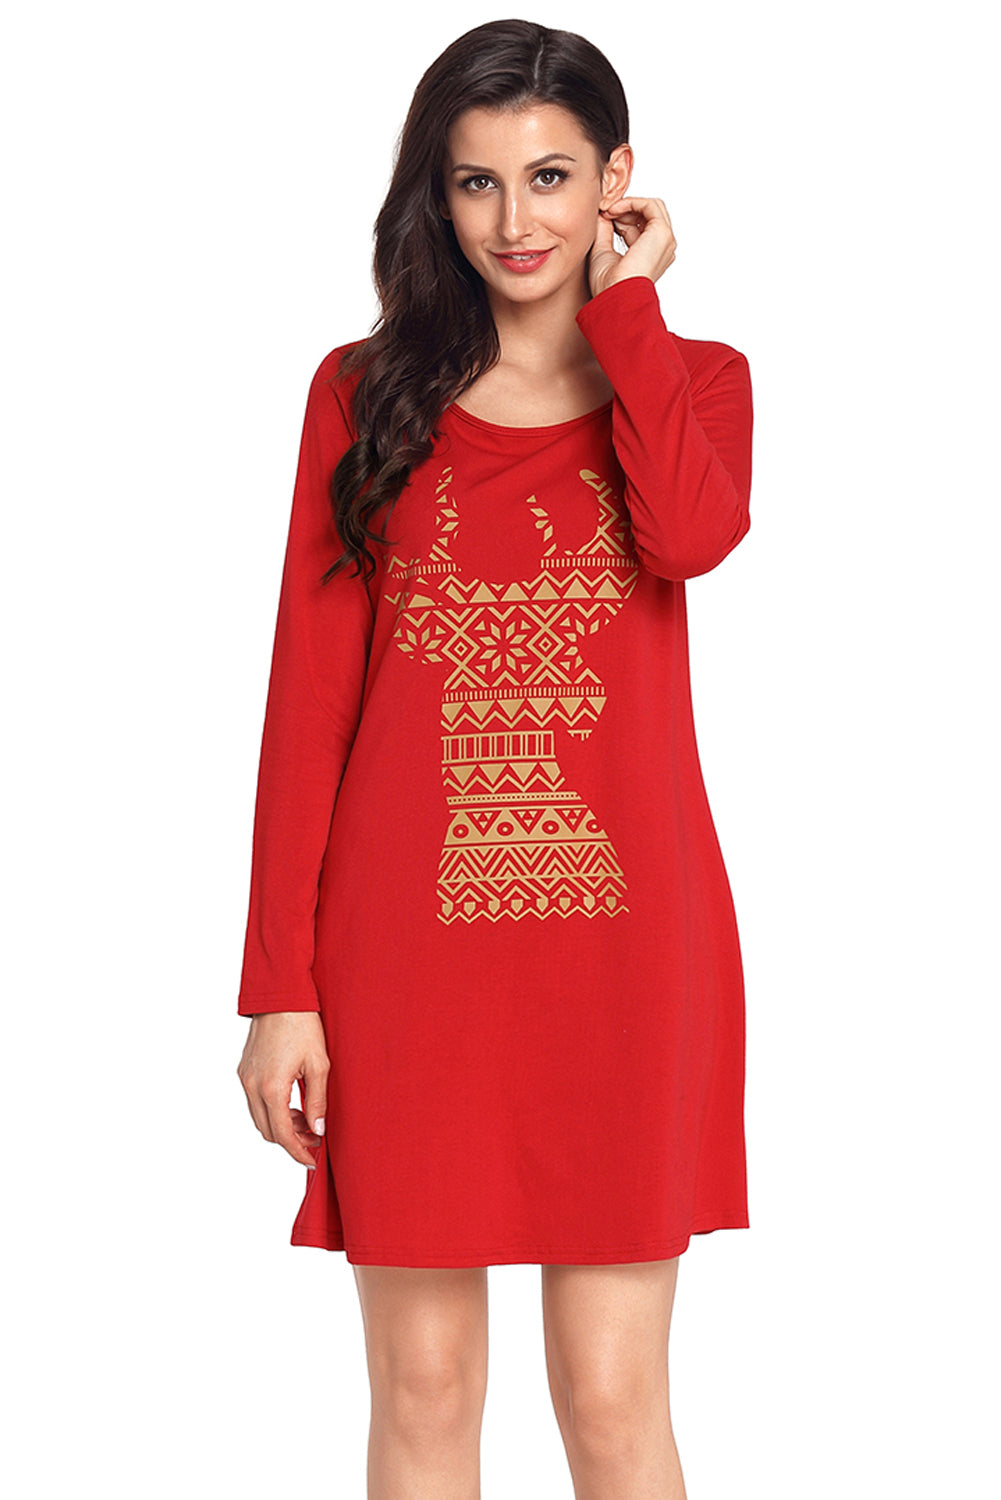 Chicloth Geometric Snowflake Reindeer Red Christmas T-shirt Dress - M / Red